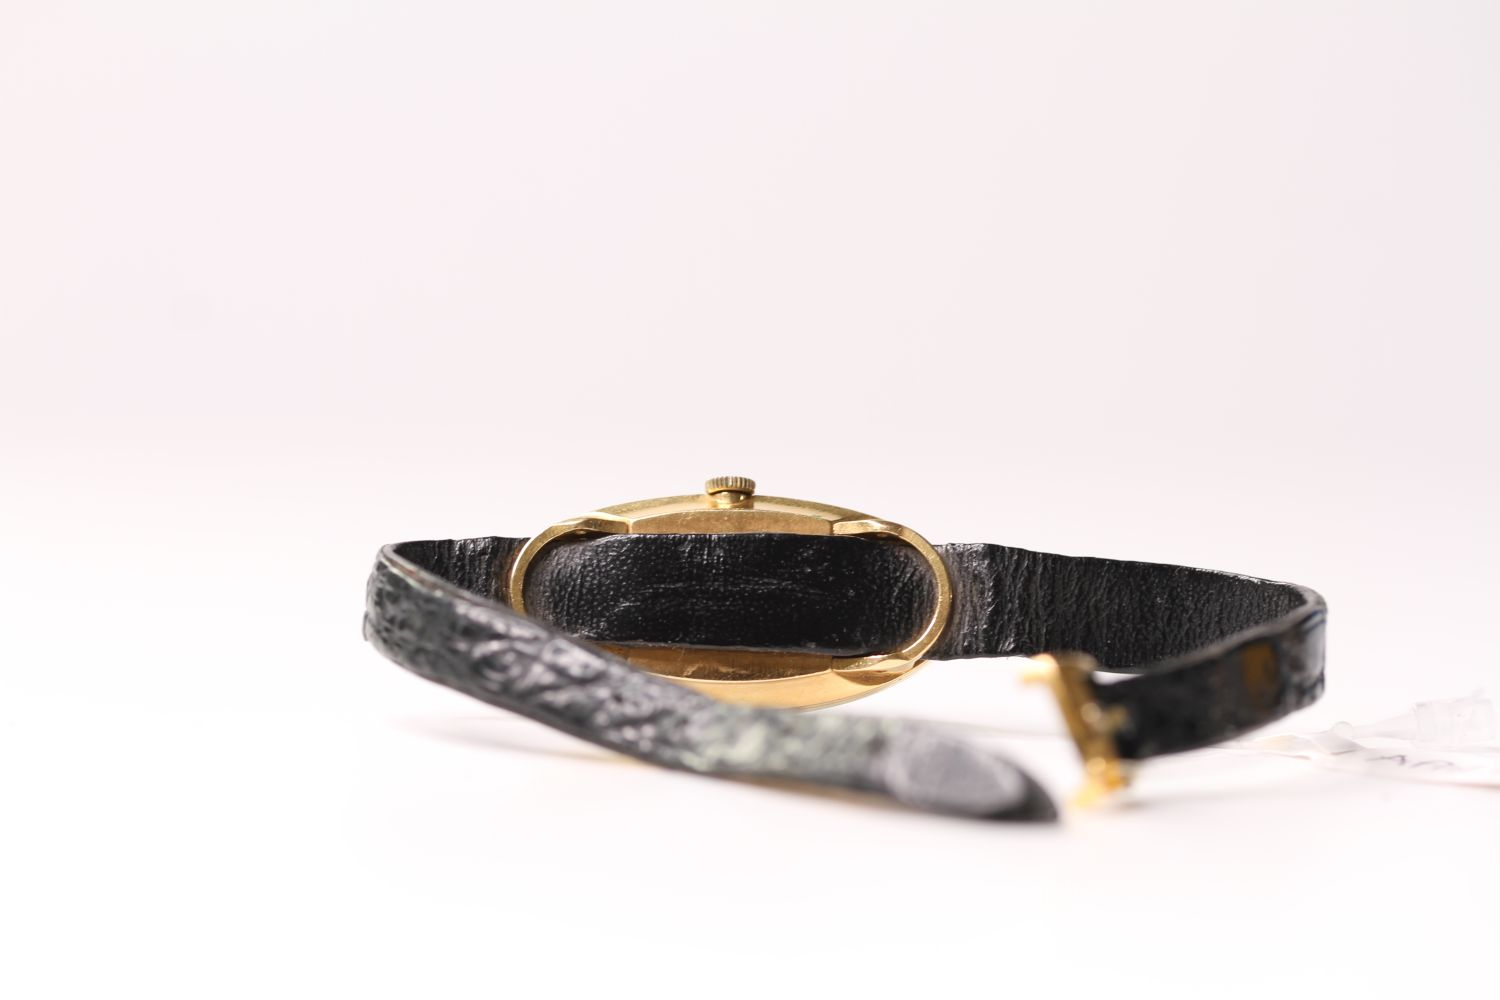 RARE LADIES BAUME & MERCIER BAIGNOIRE WRISTWATCH REF. 38261, oval black dial with gold leaf hands, - Image 2 of 2